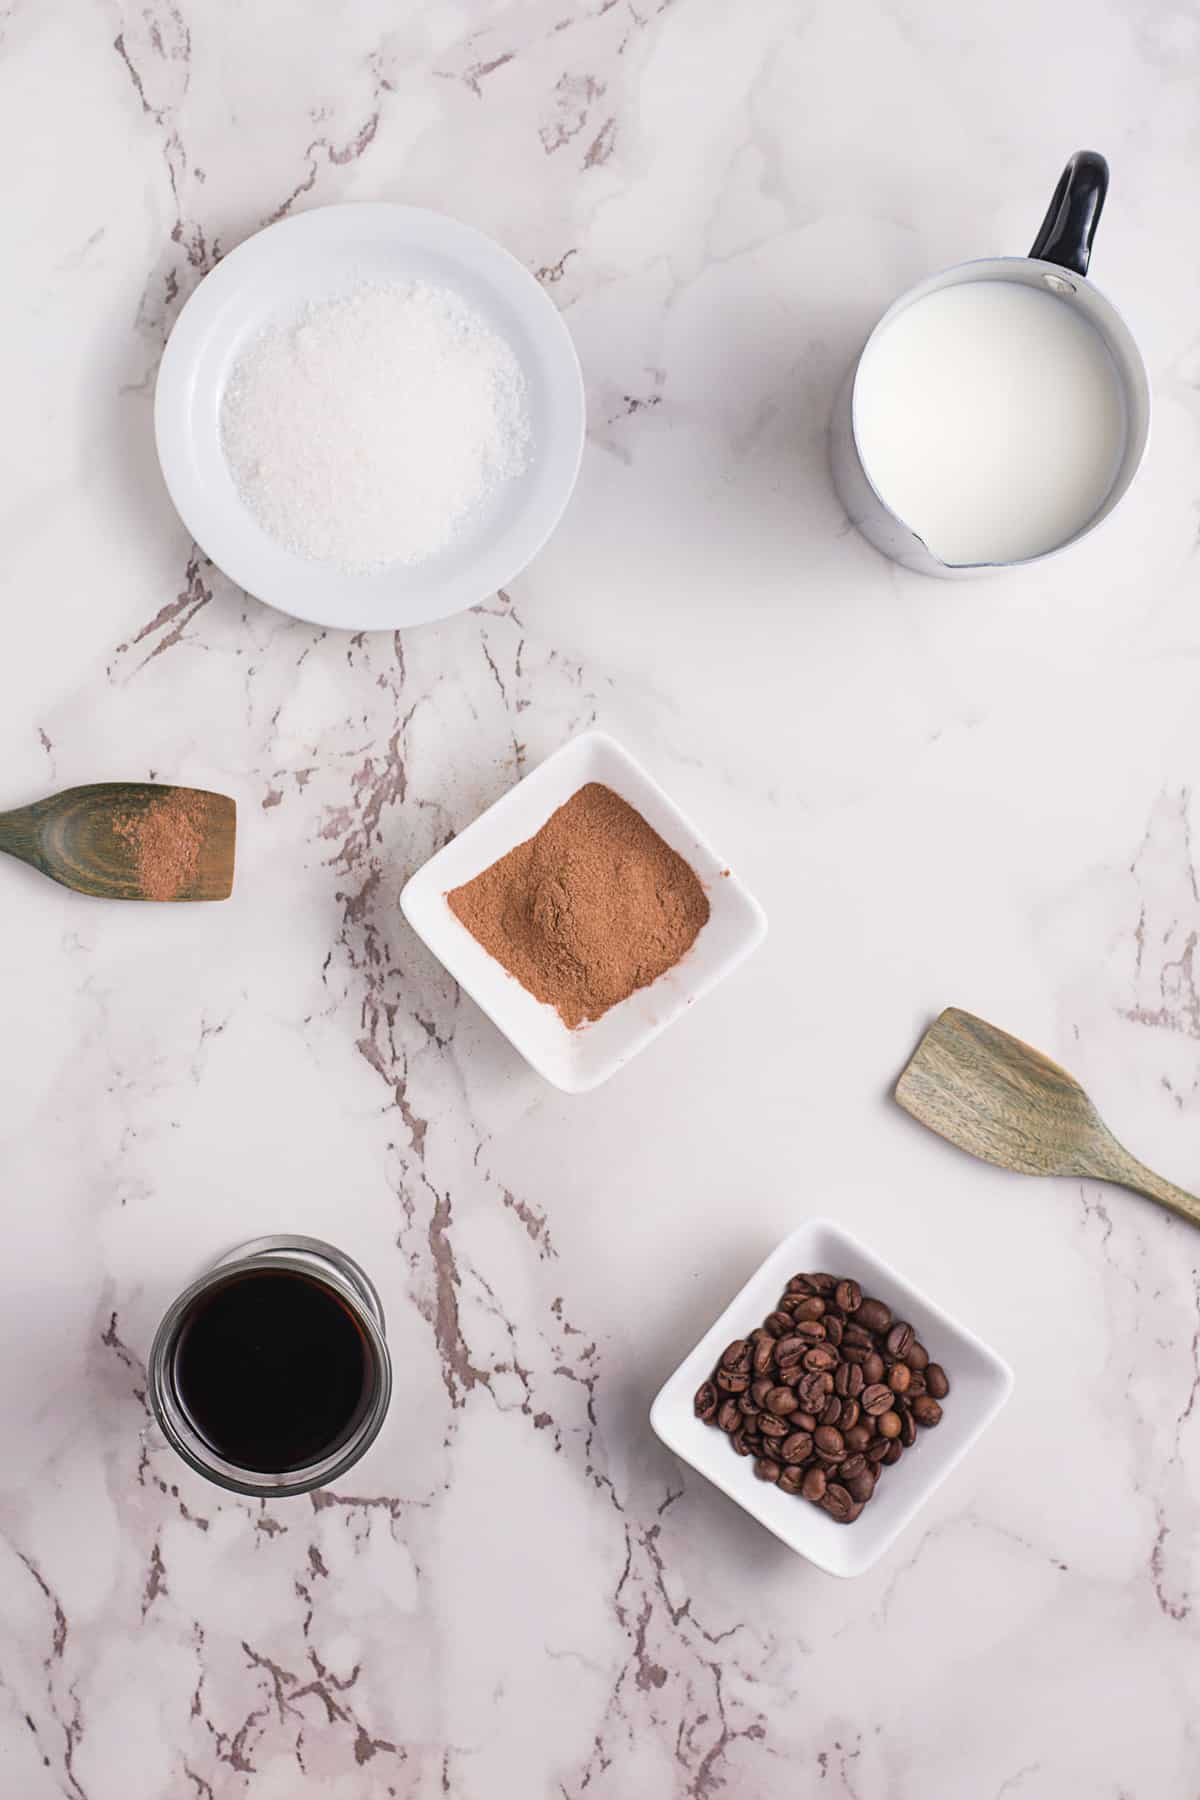 Overhead view of ingredients needed to make a cinnamon latte, including cinnamon, espresso, milk.